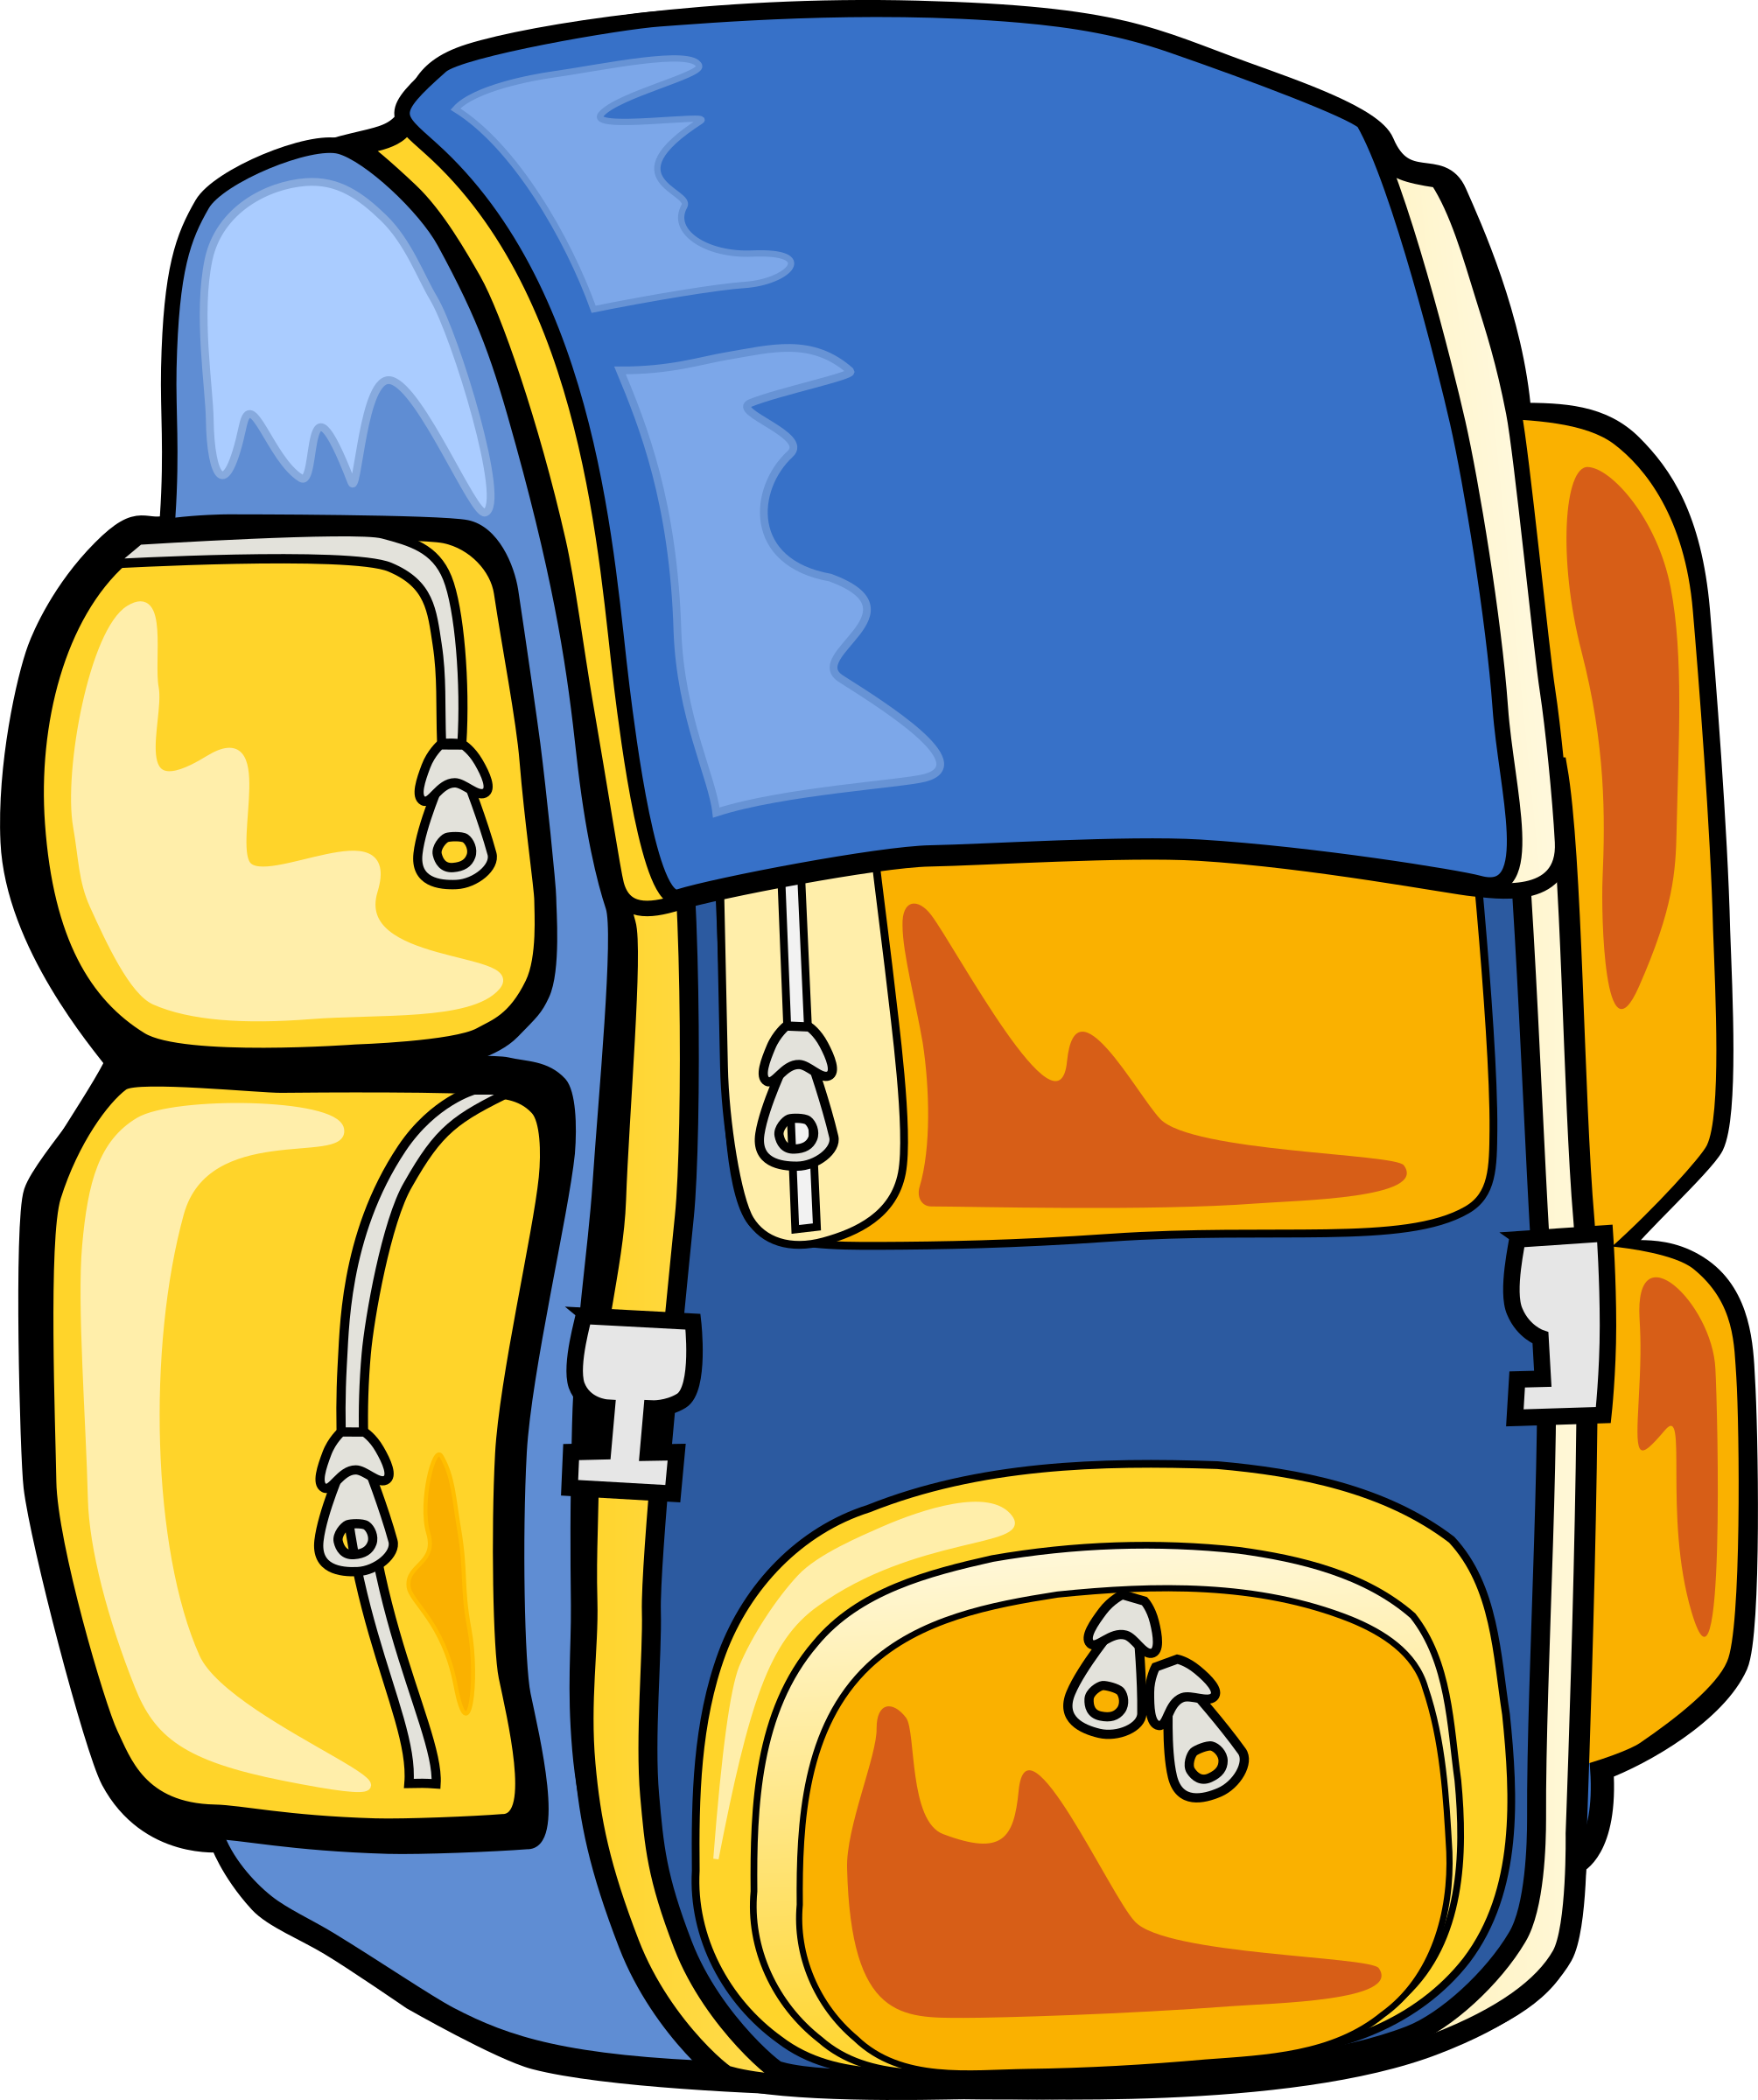 Big image png. Clipart backpack small backpack